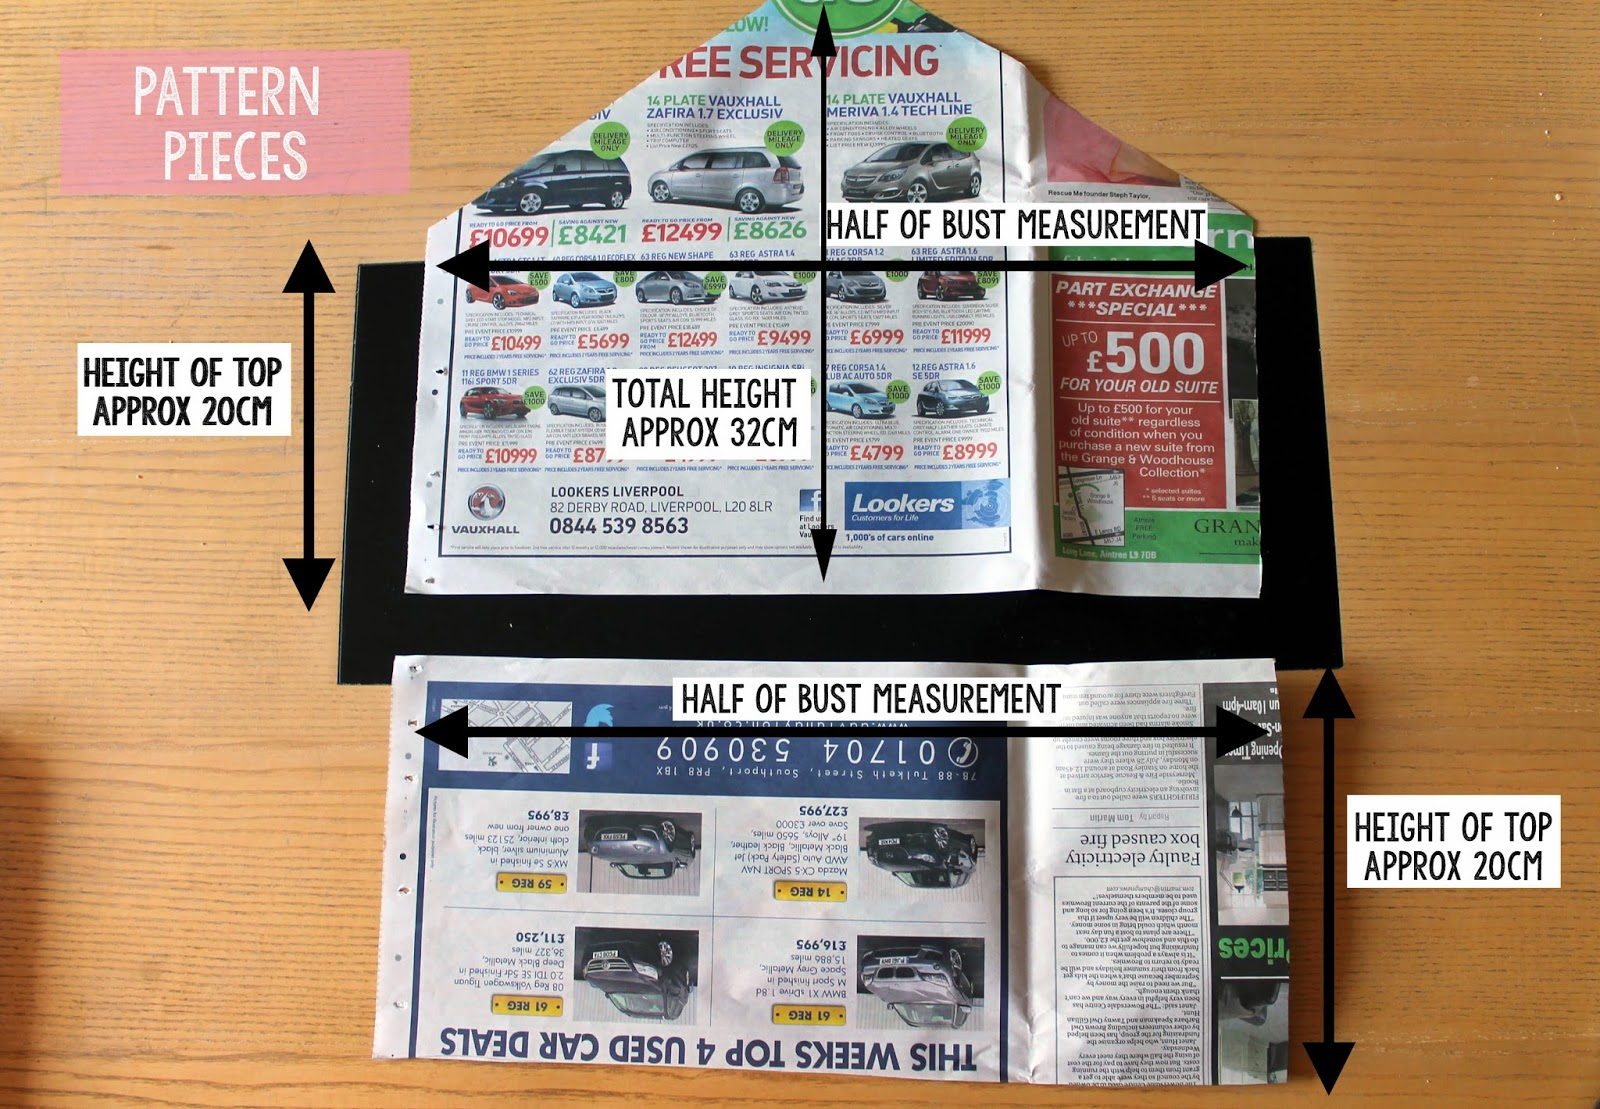 halterneck crop top pattern pieces